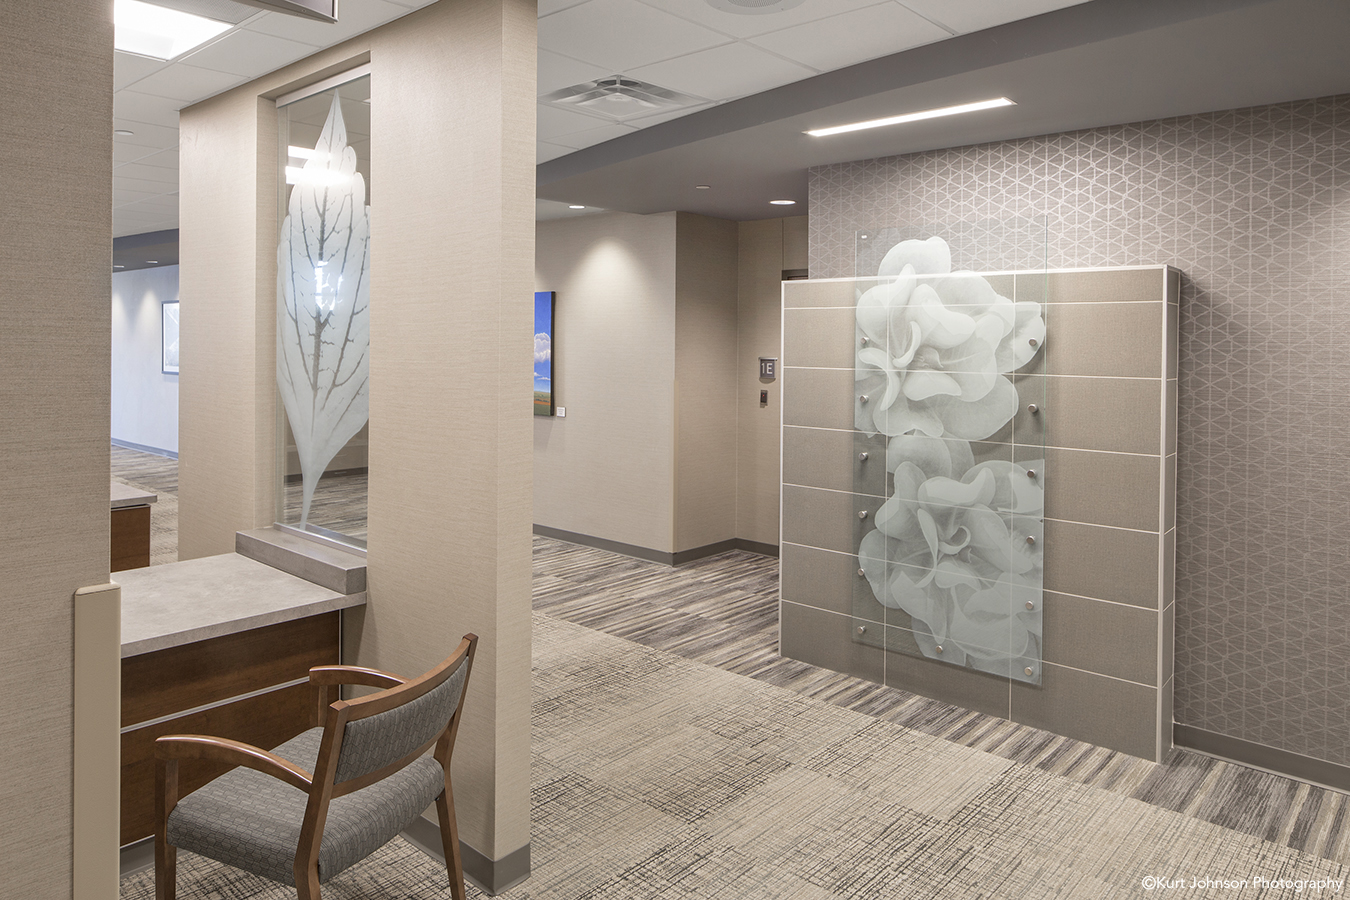 Install-film-glass-art-Shenandoah Medical Center-Shenandoah IA